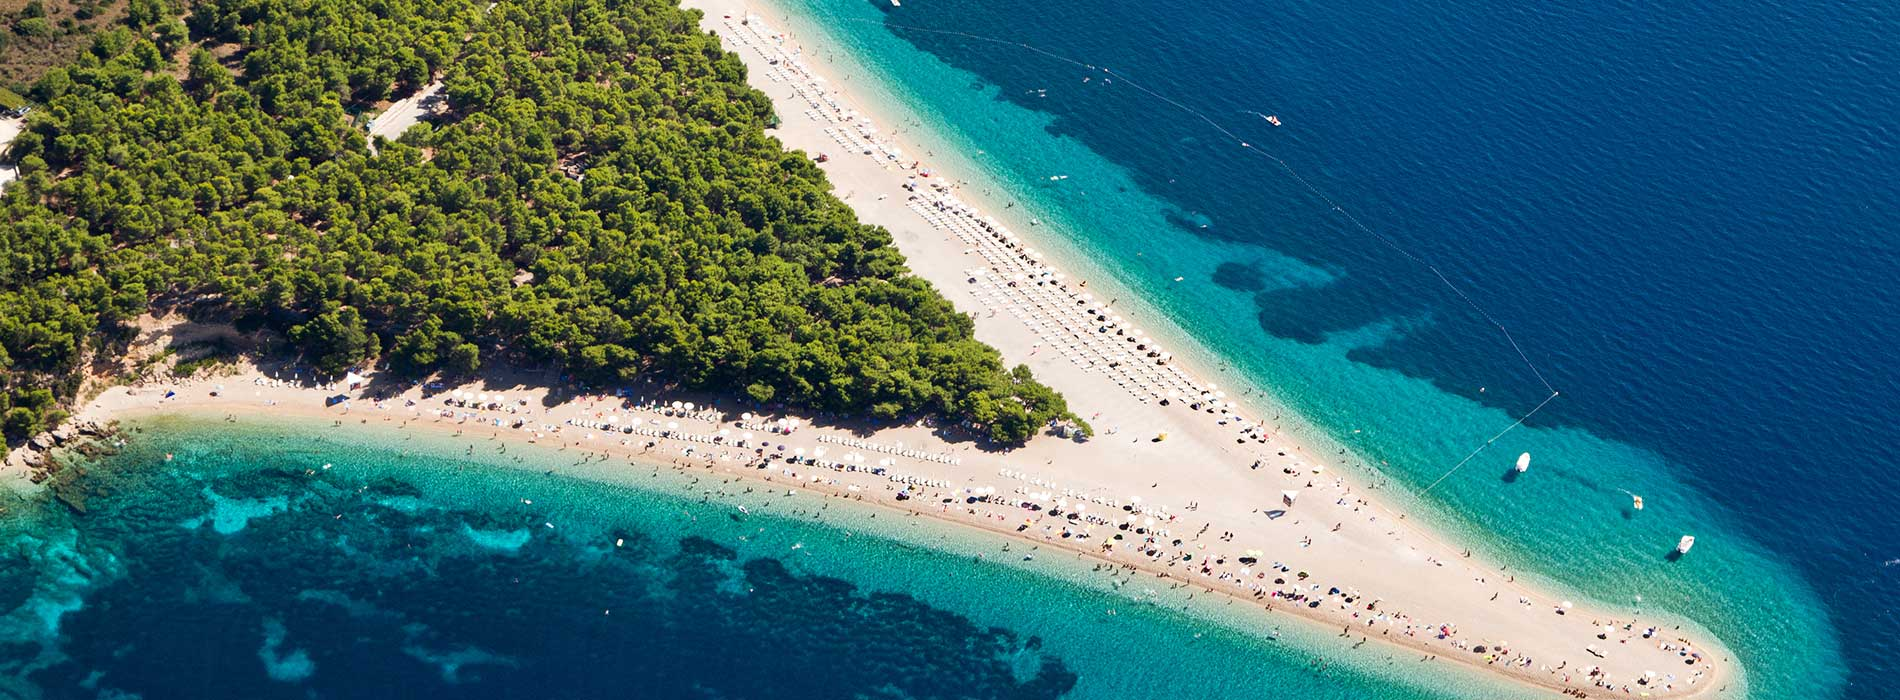 Aerial photograph of famous Zlatni Rat beach in Bol, Brac Island.jpg